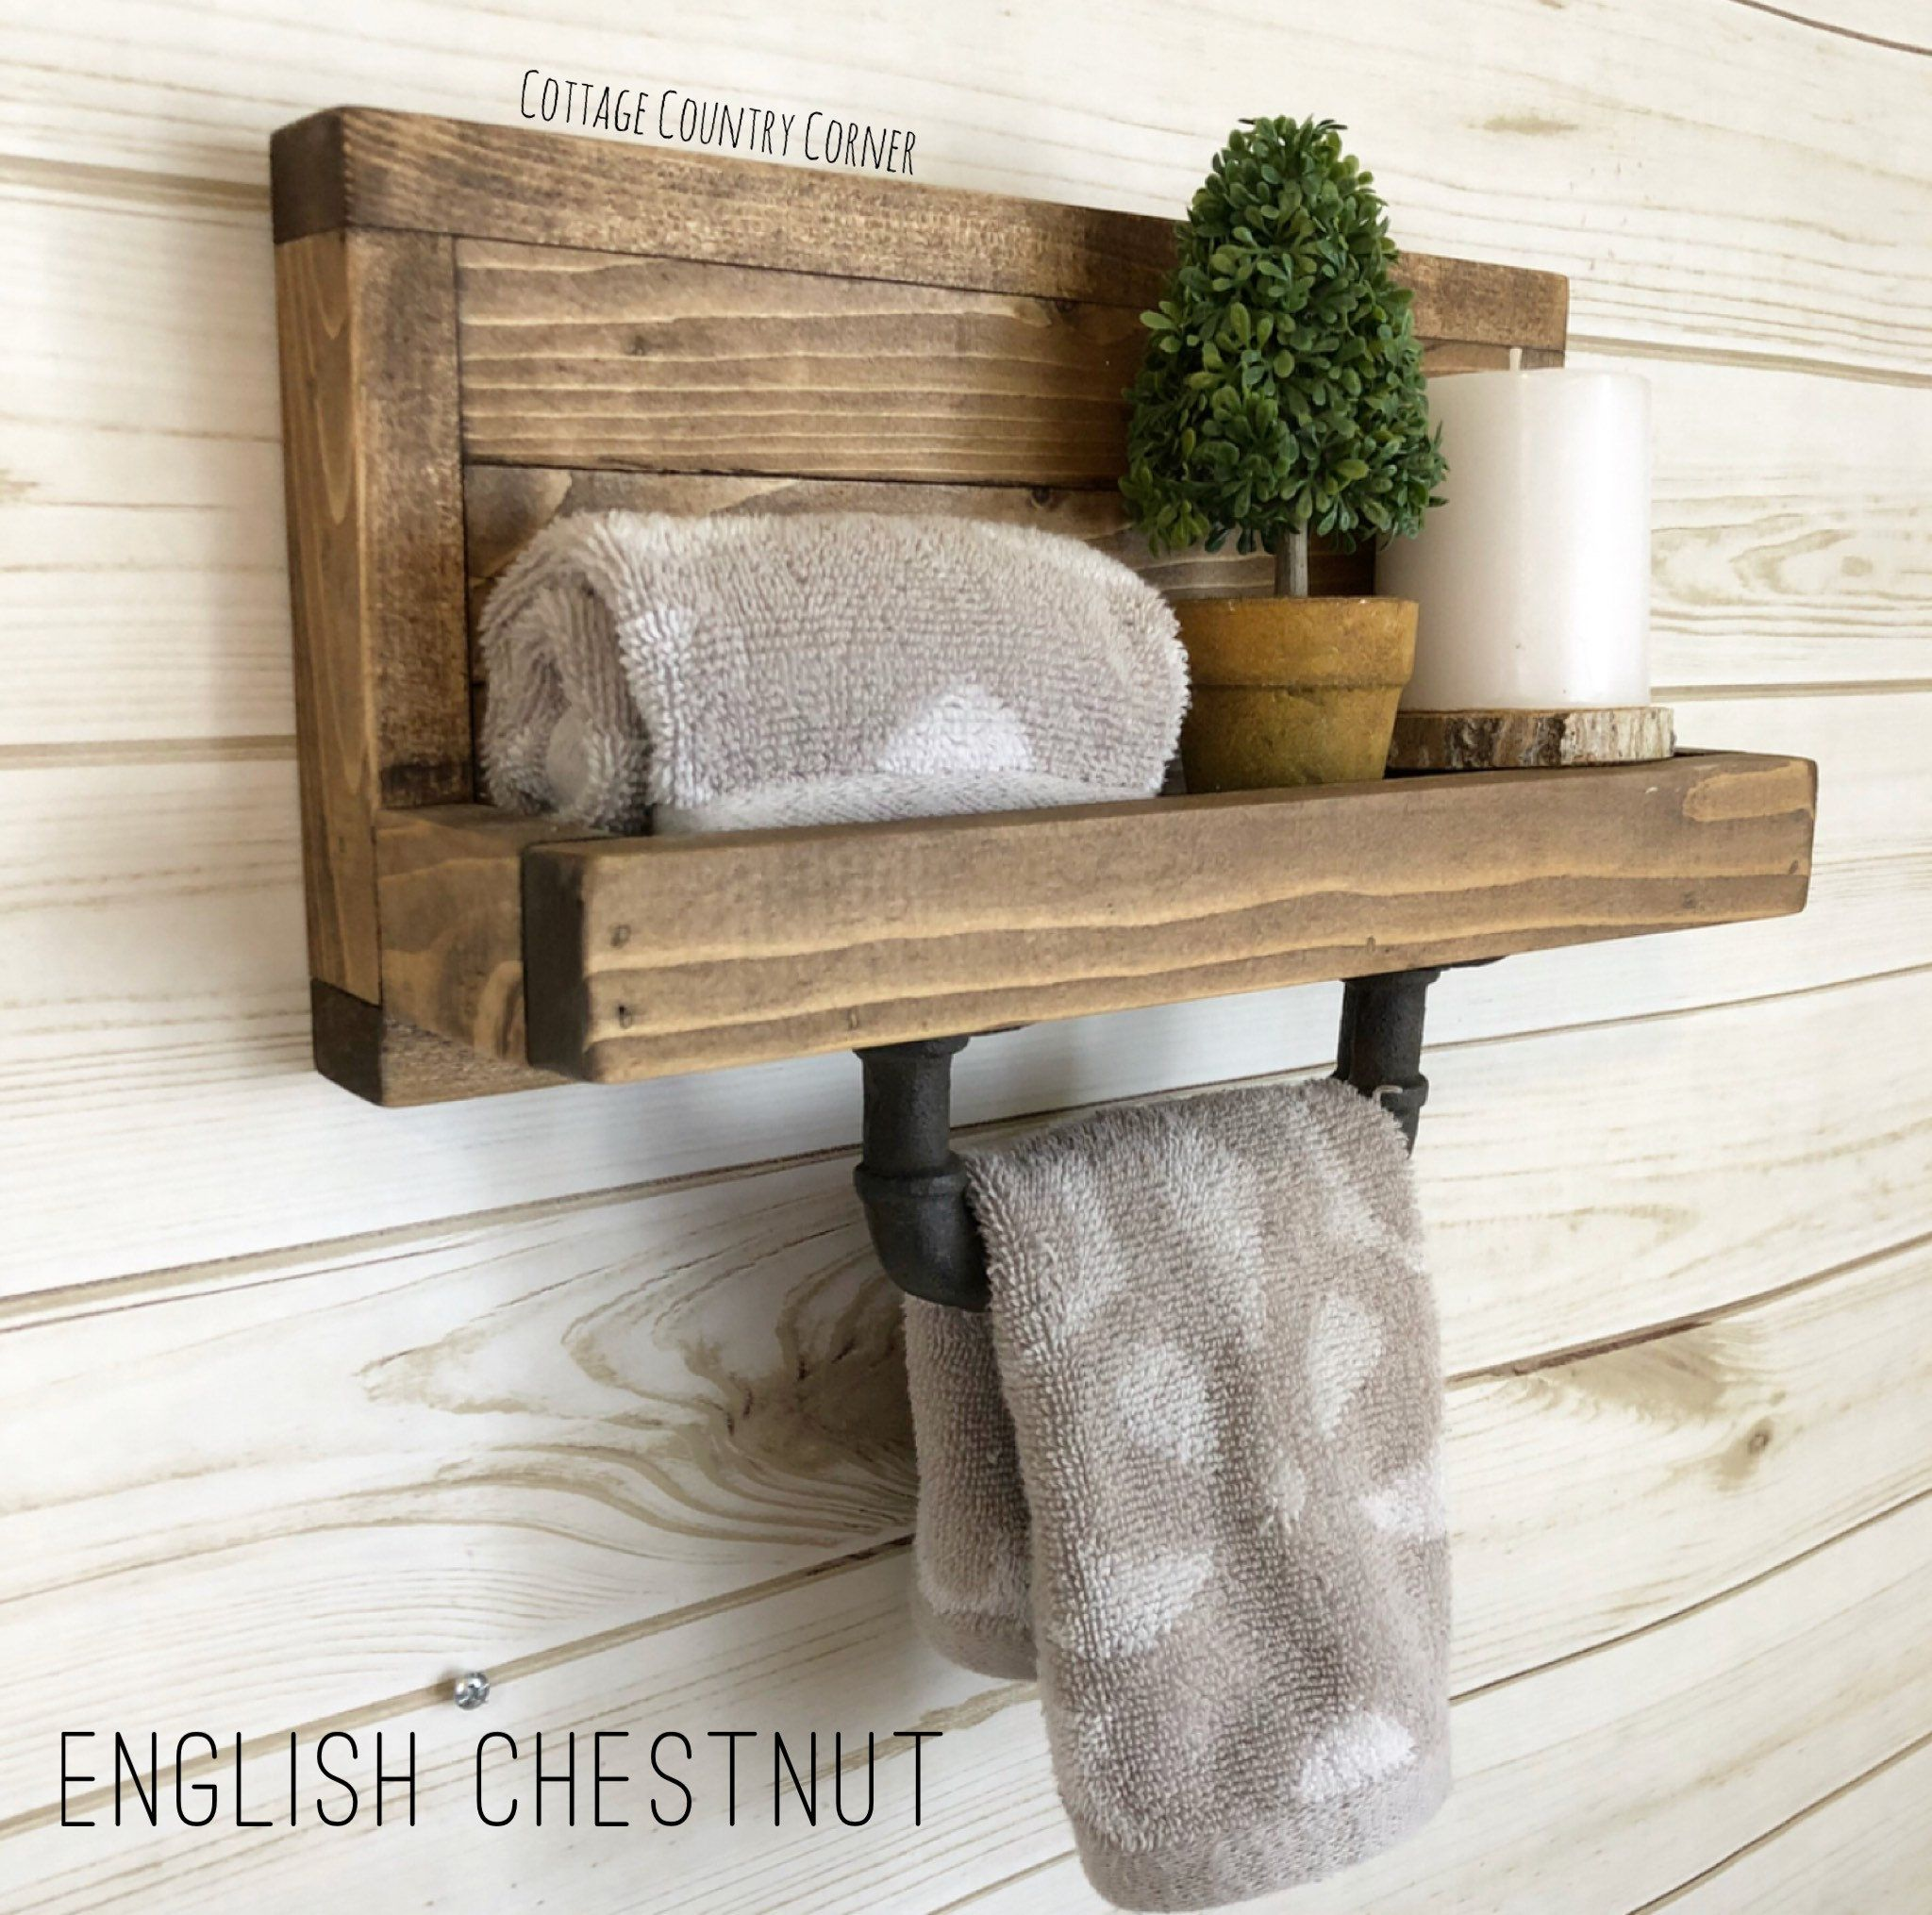 Small Hand Towel Holder Towel Rack Bathroom Decor Towel Etsy Hand Towel Holder Small Hand Towels Kitchen Towel Holder